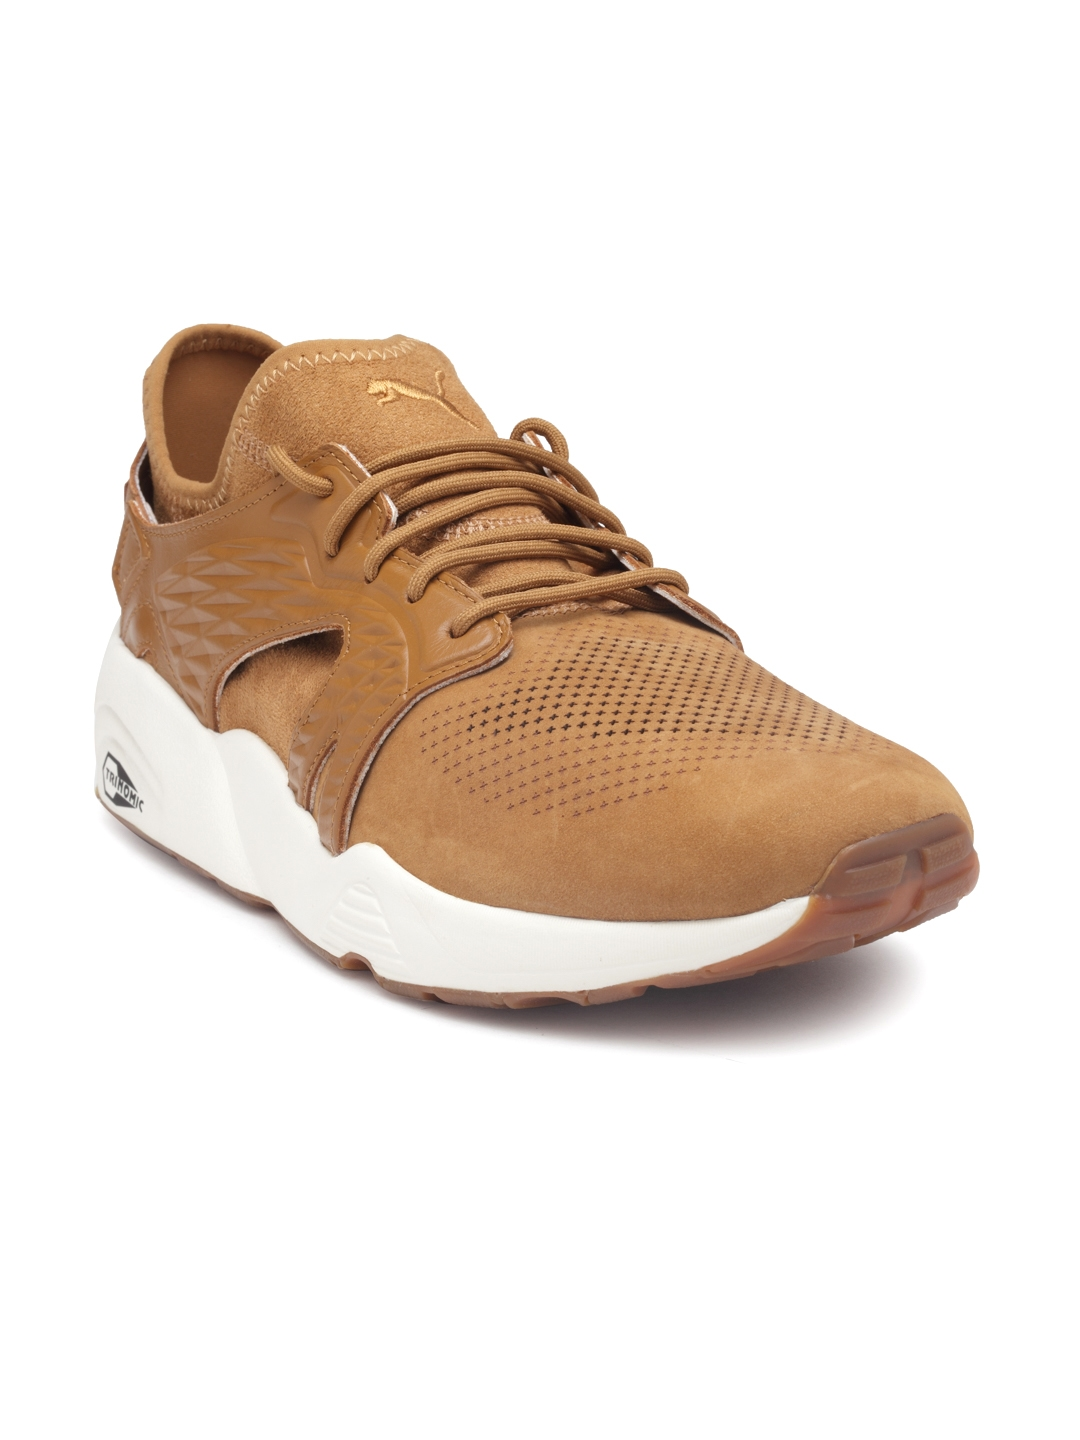 Buy Puma Men Brown Blaze Cage Sandstorm Sneakers - Casual Shoes for ... 53939a02e